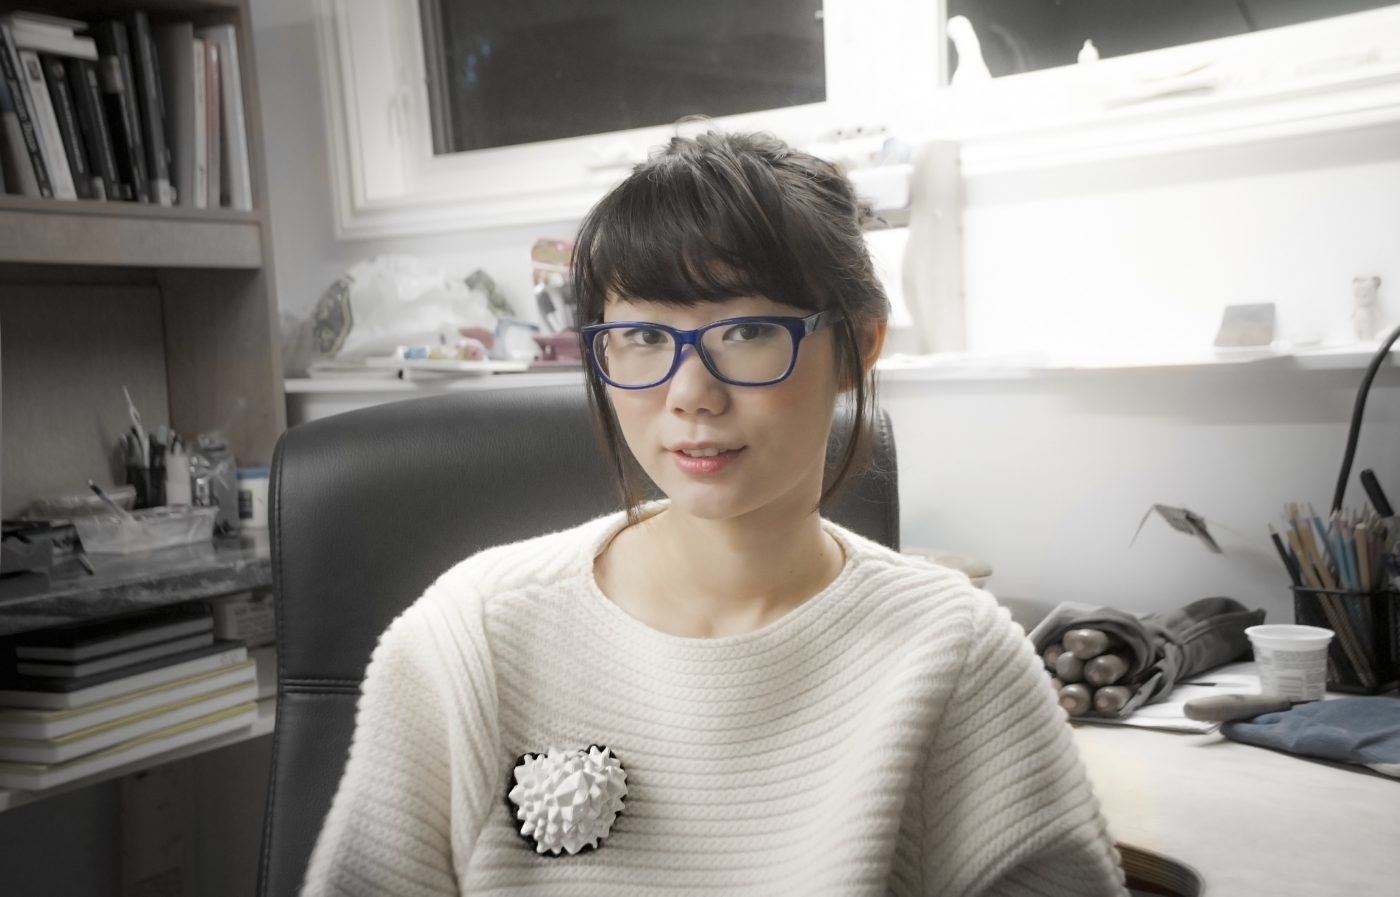 Seated artist wearing a large brooch on a knitted white sweater at a studio desk